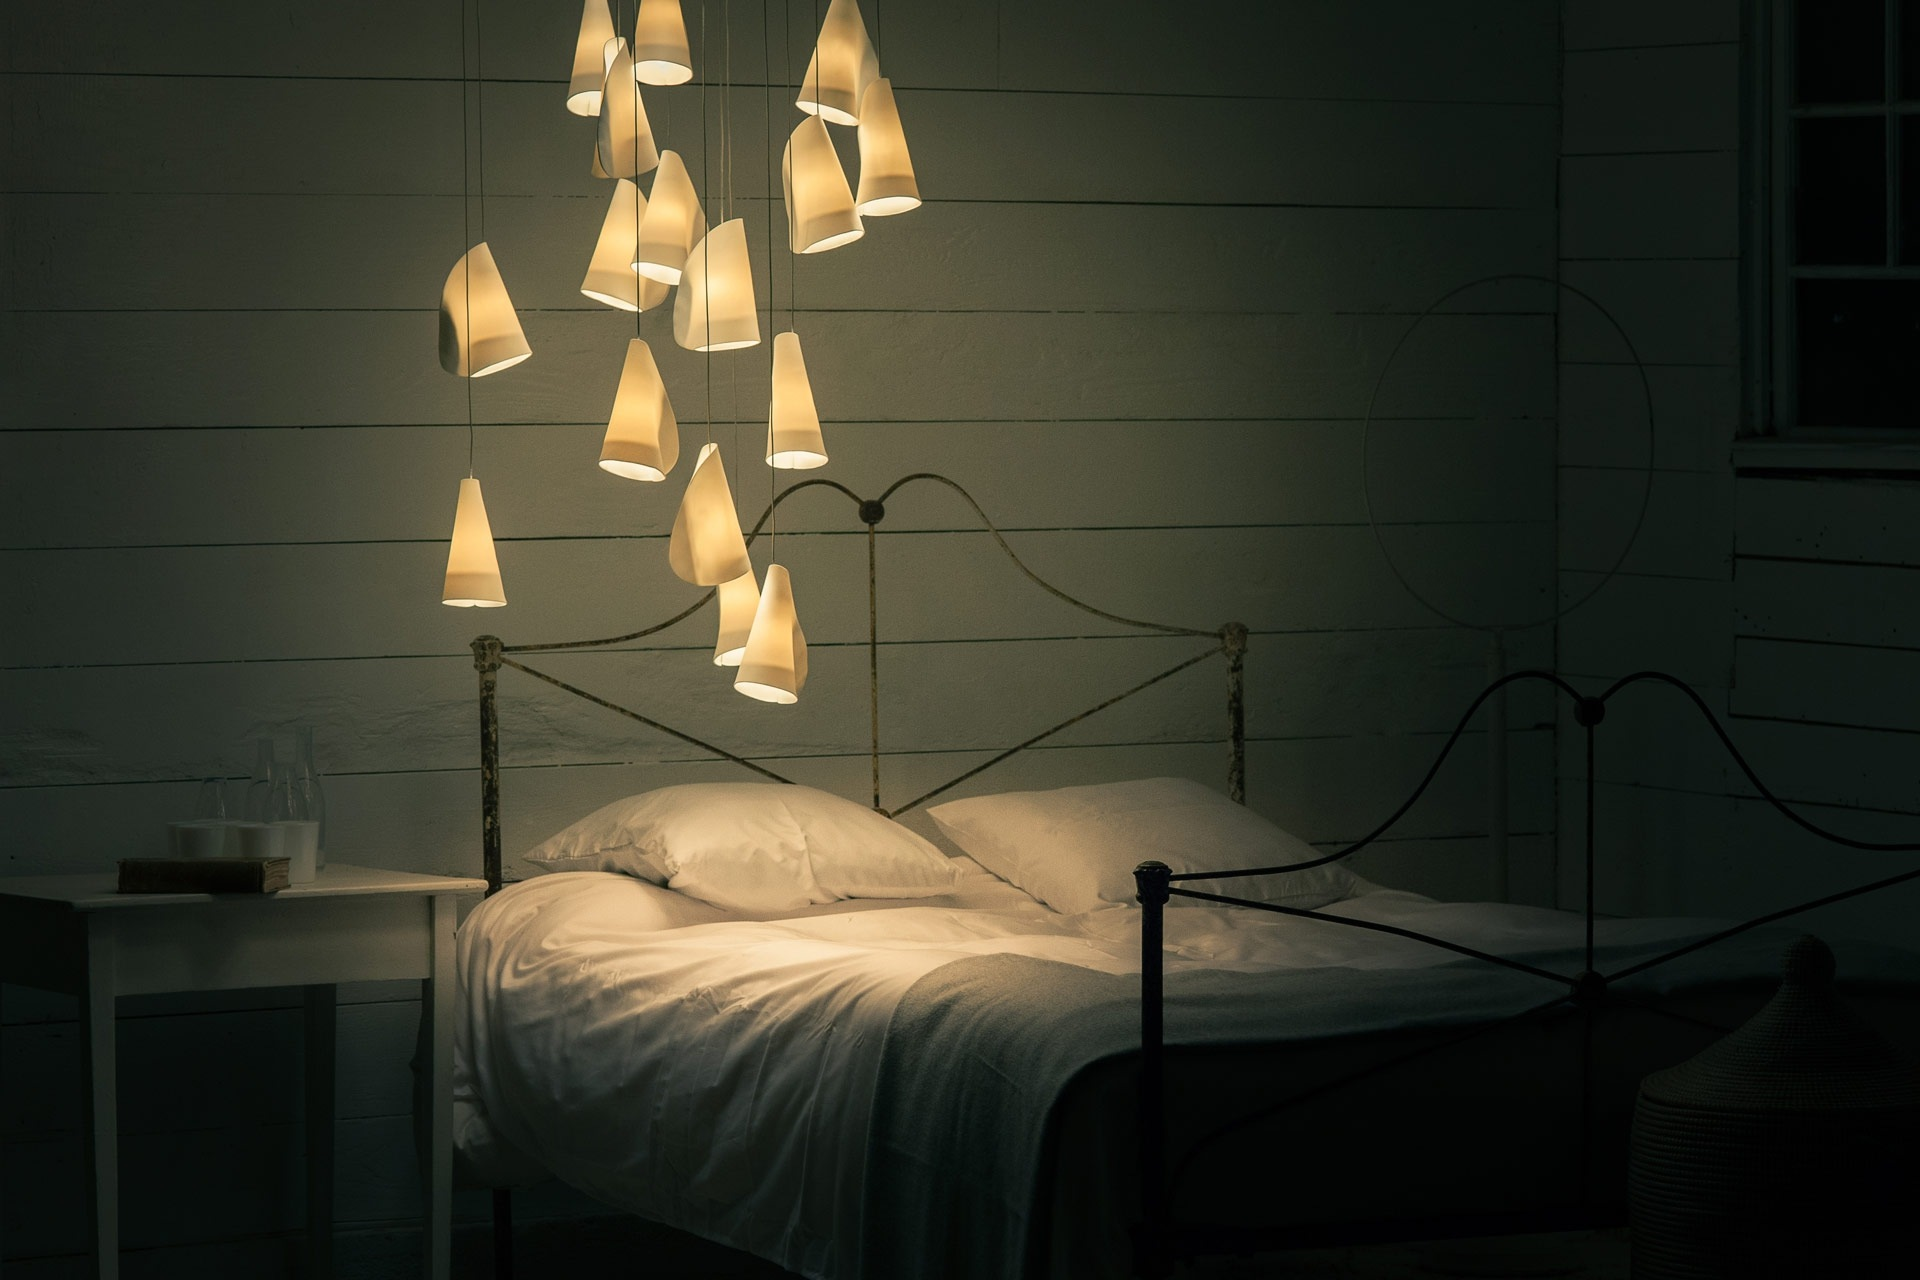 Night Lamps at the Bedroom: Necessary Lighting Fixtures. Myriad of small fixtures